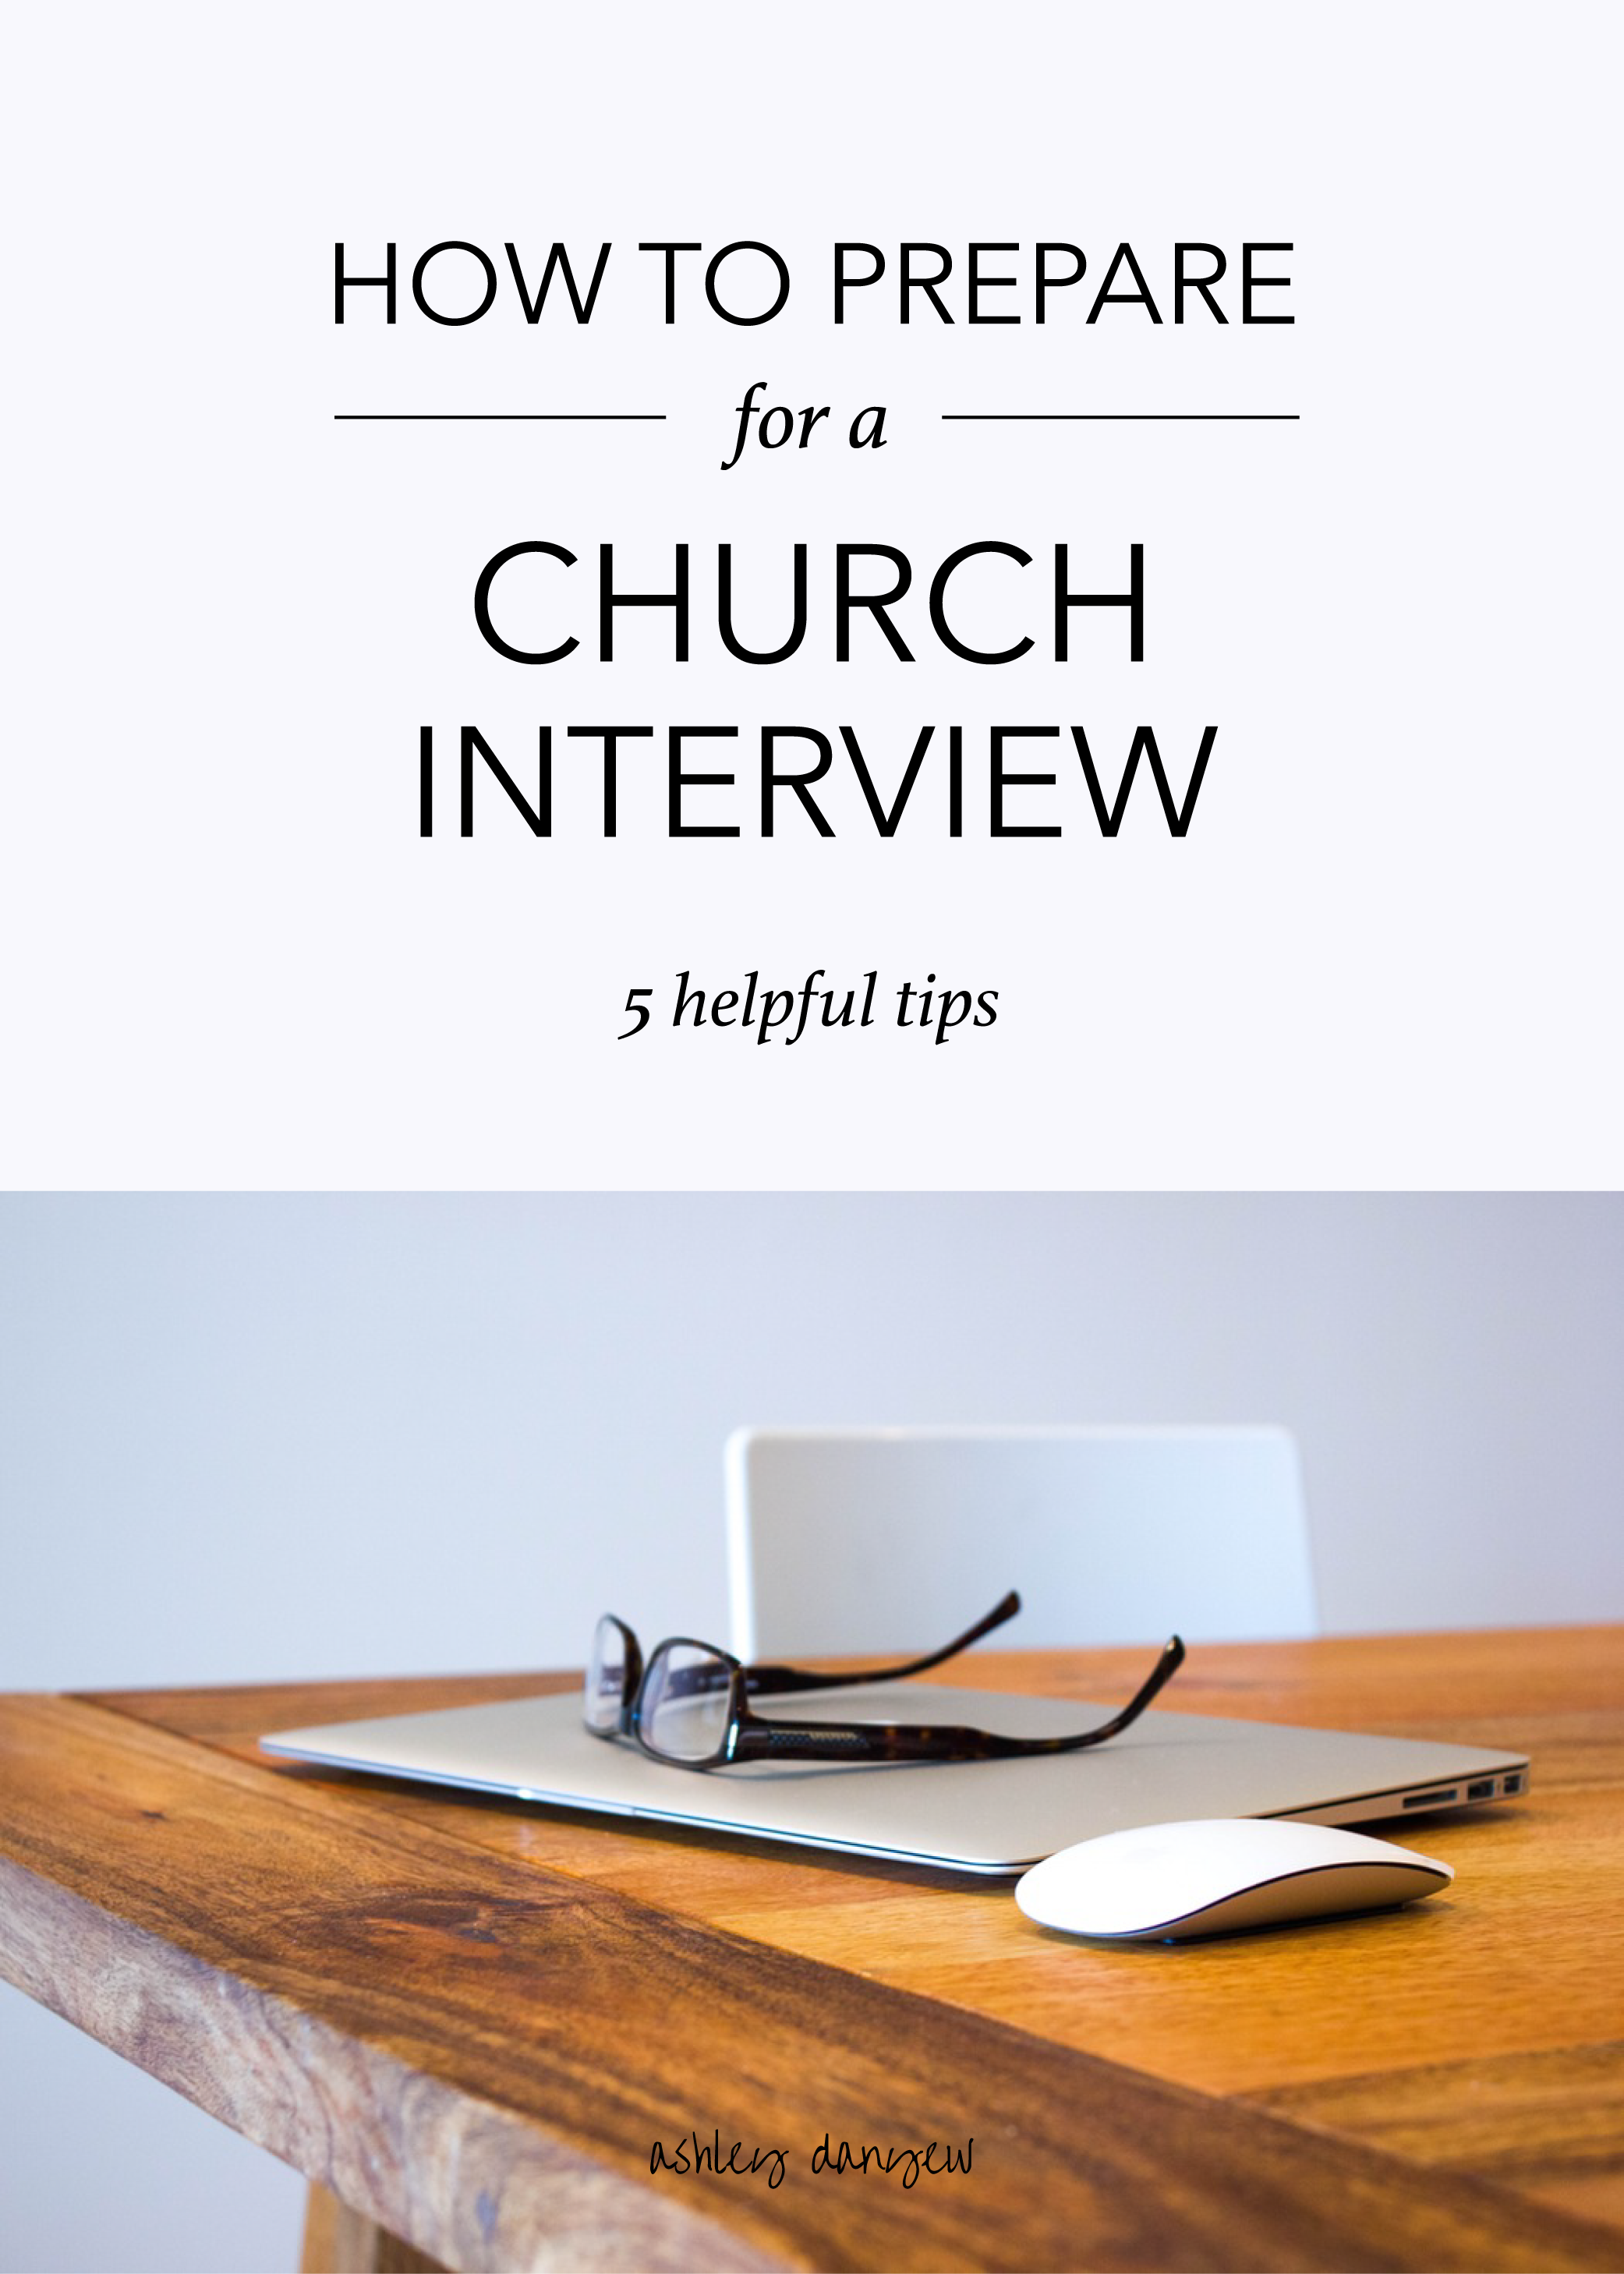 Copy of How to Prepare for a Church Interview